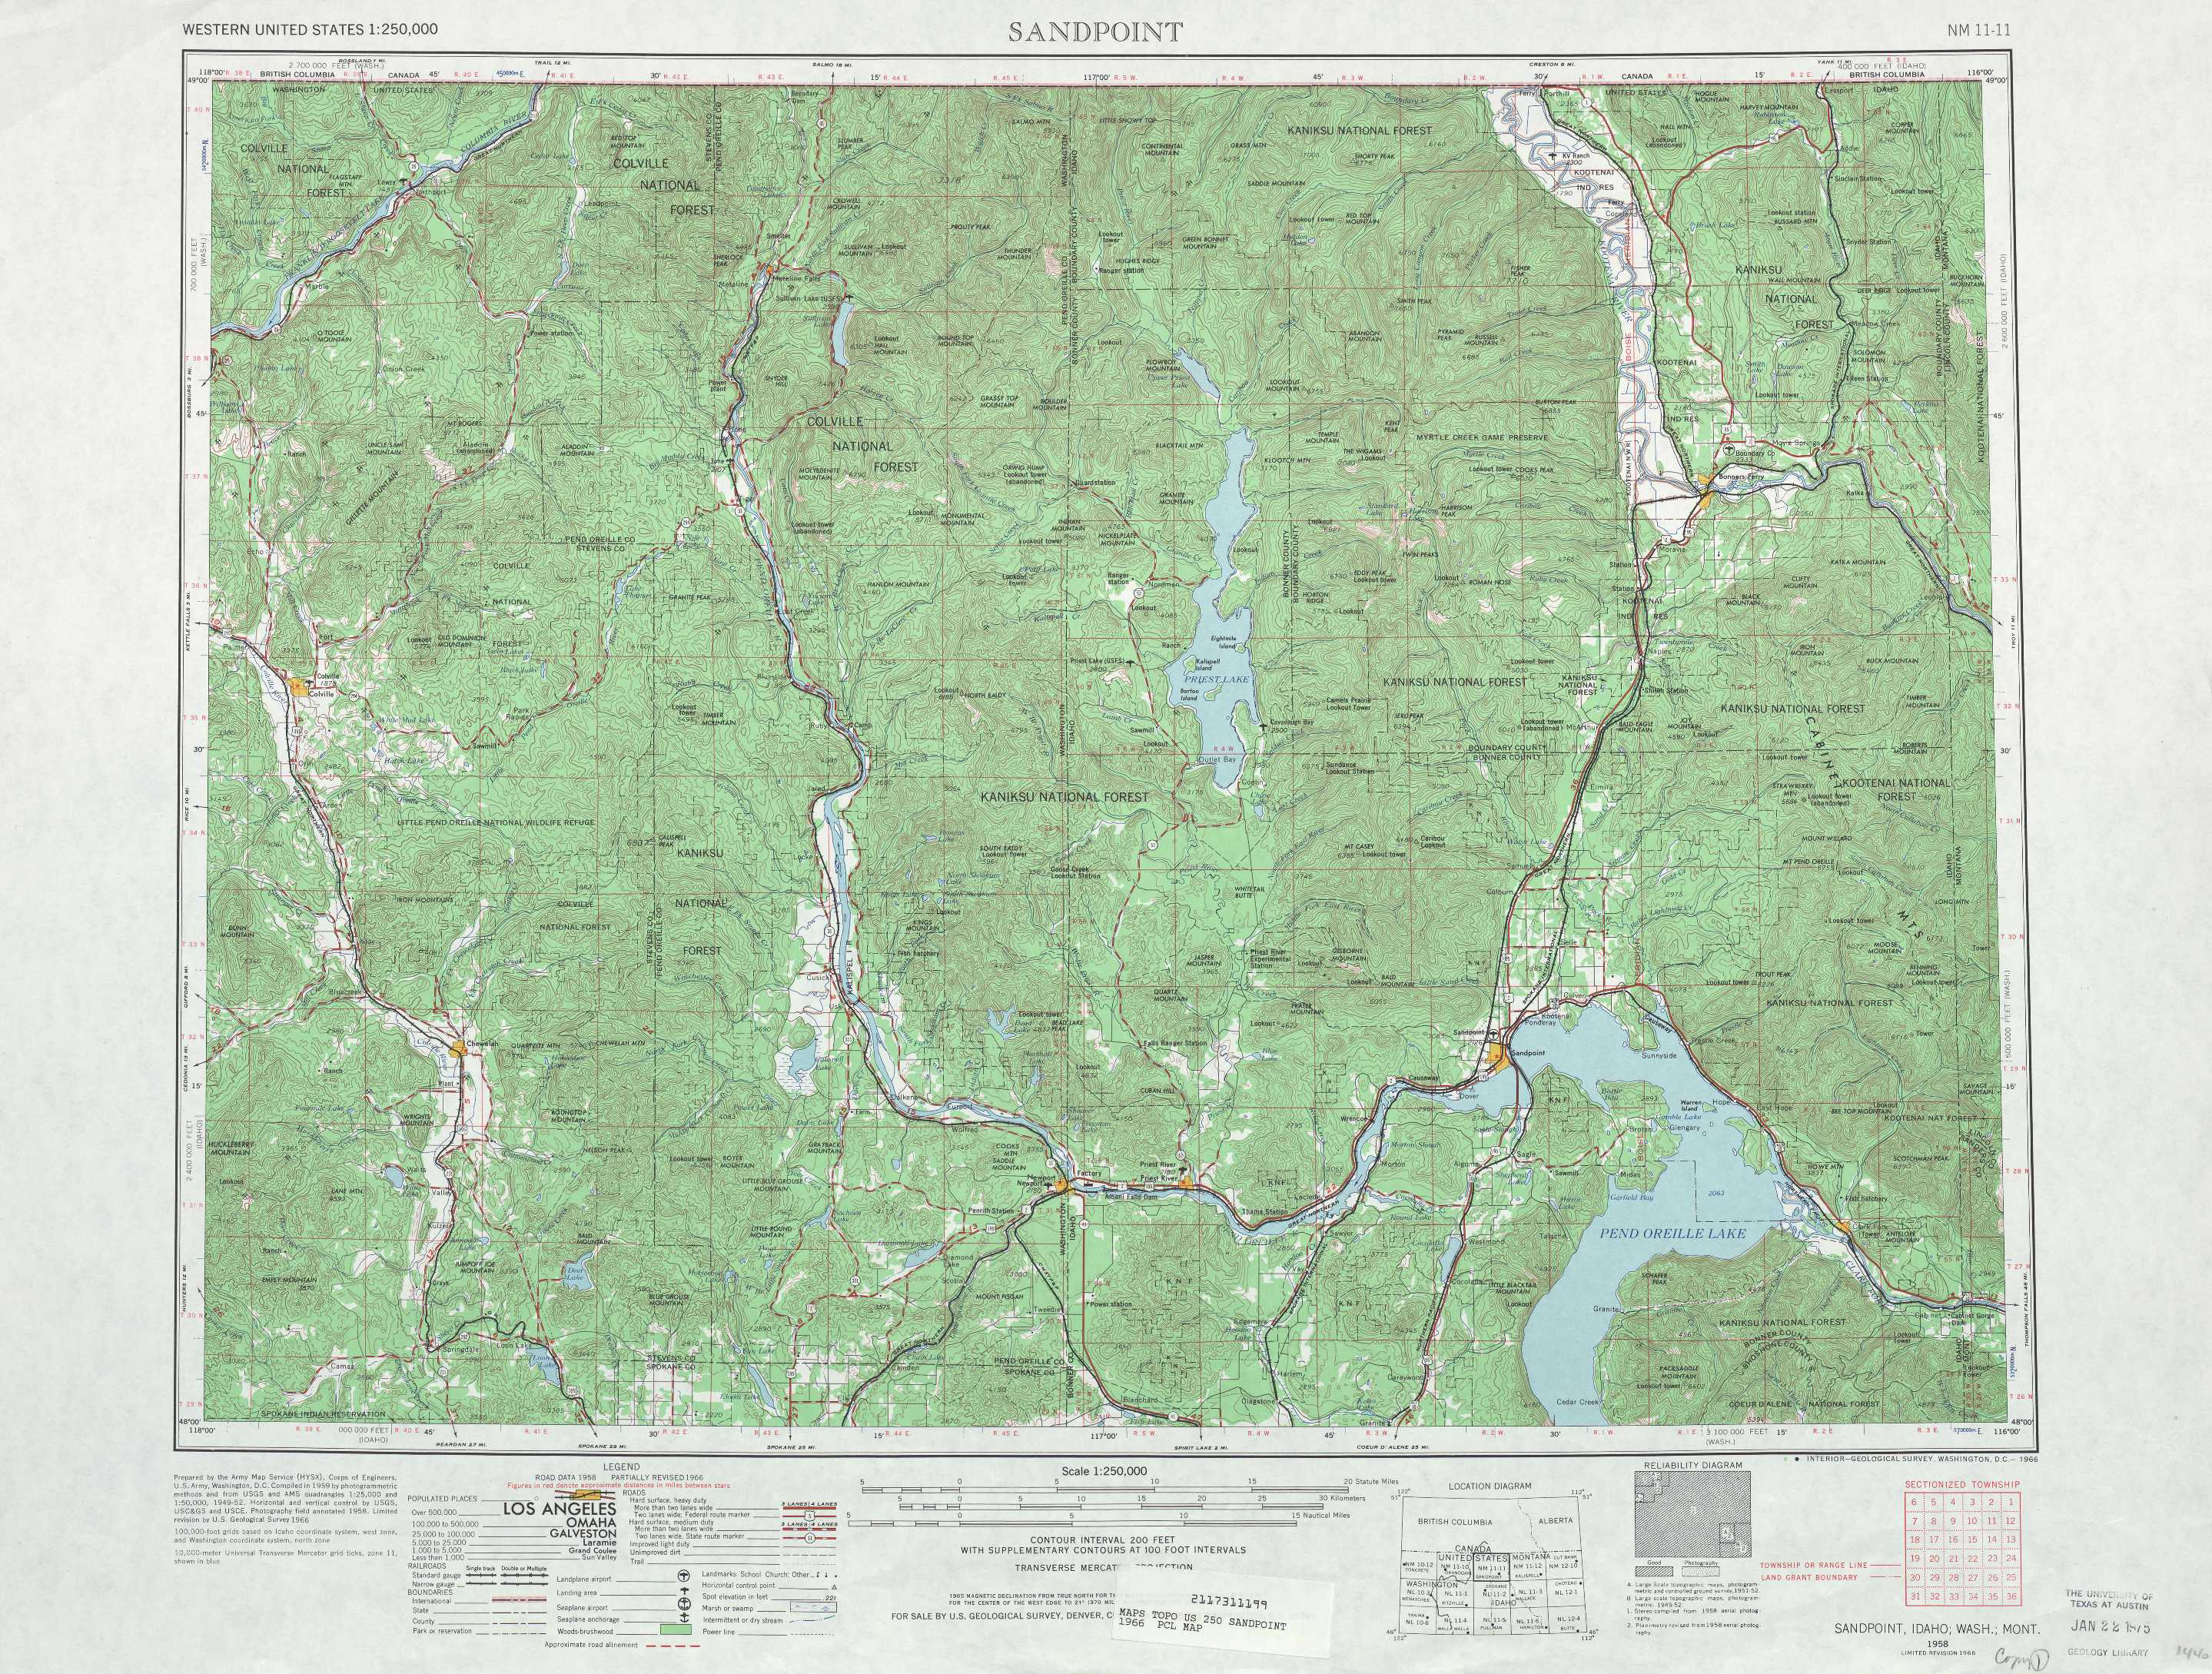 Sandpoint Topographic Maps WA ID MT USGS Topo Quad A At - Where to buy us topo maps